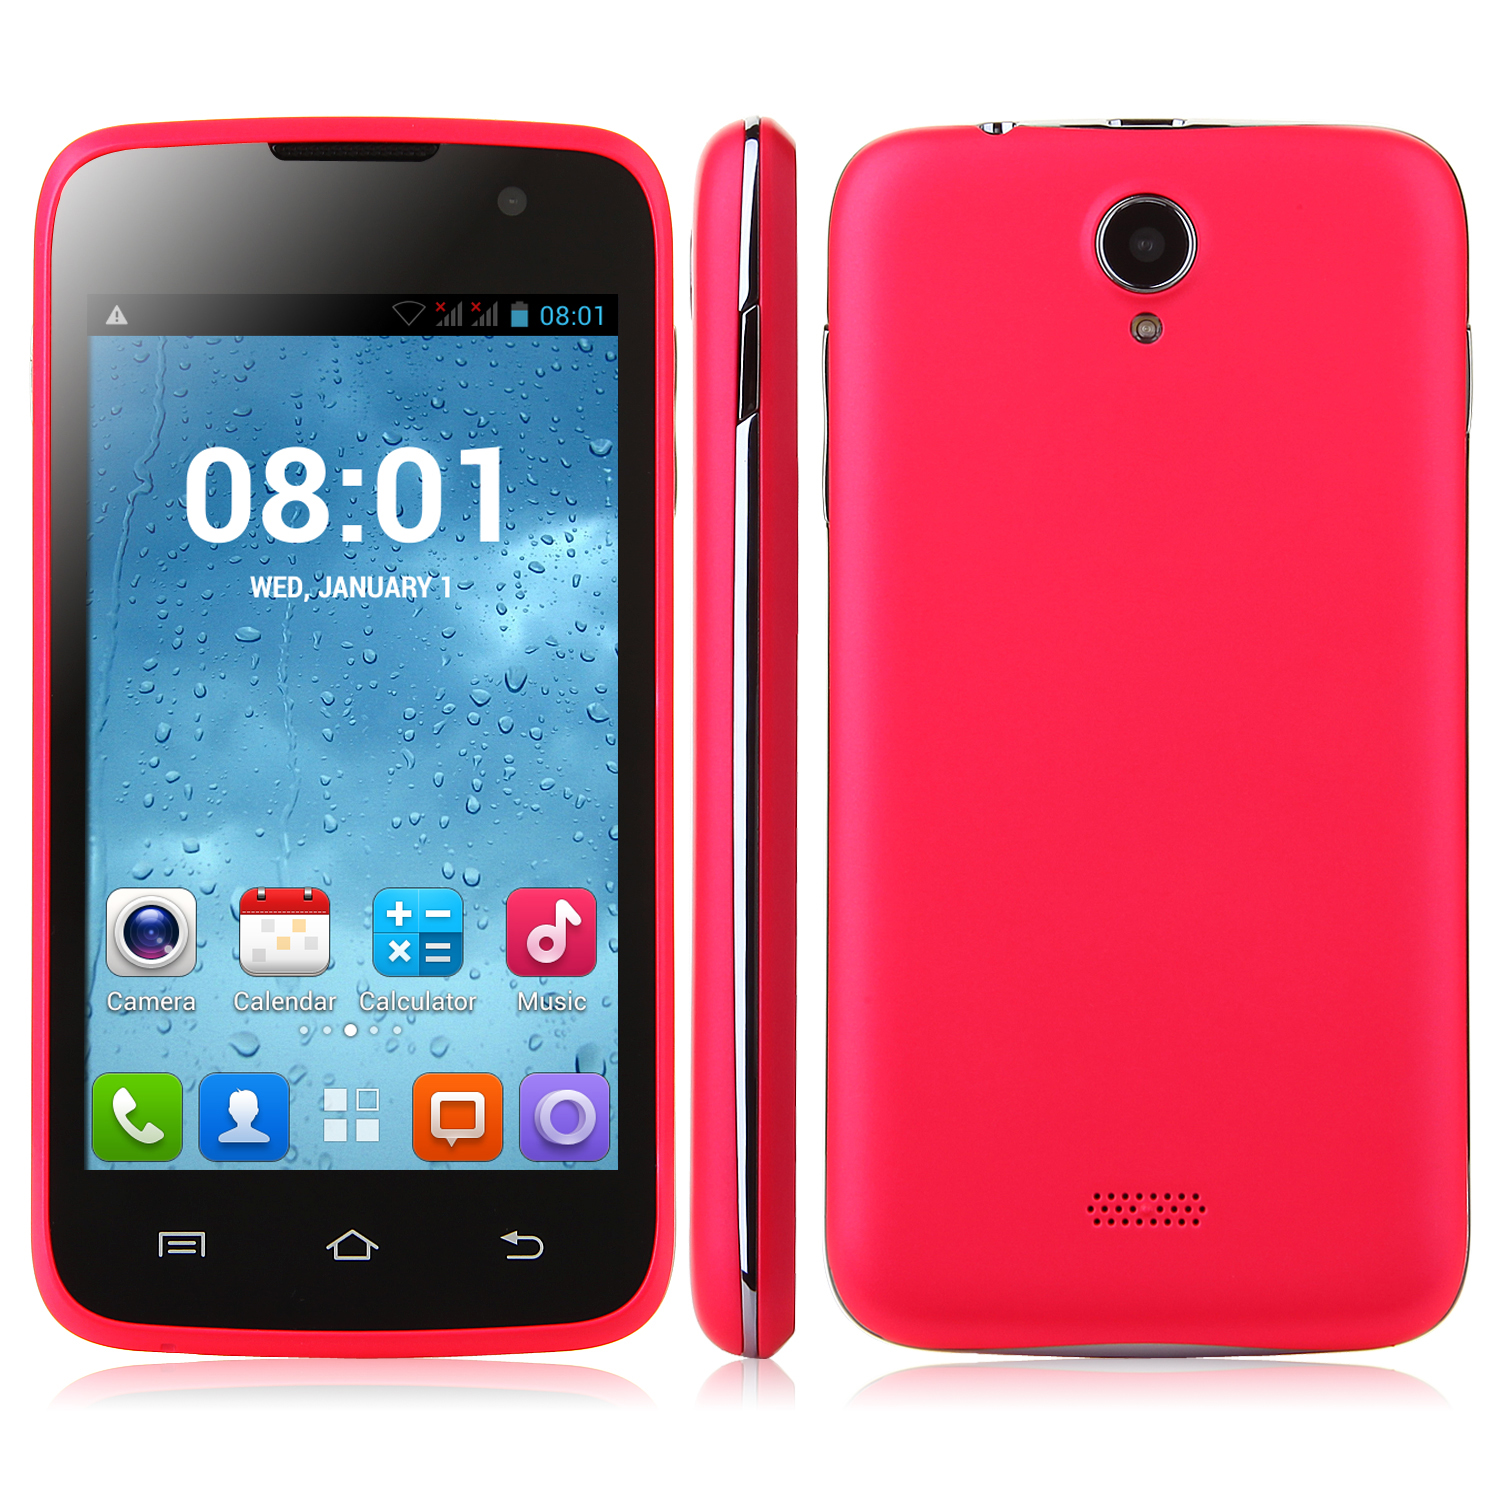 Tengda A48 Smartphone Android 4.2 MTK6572W 4.0 Inch 3G Wifi Play Store Pink